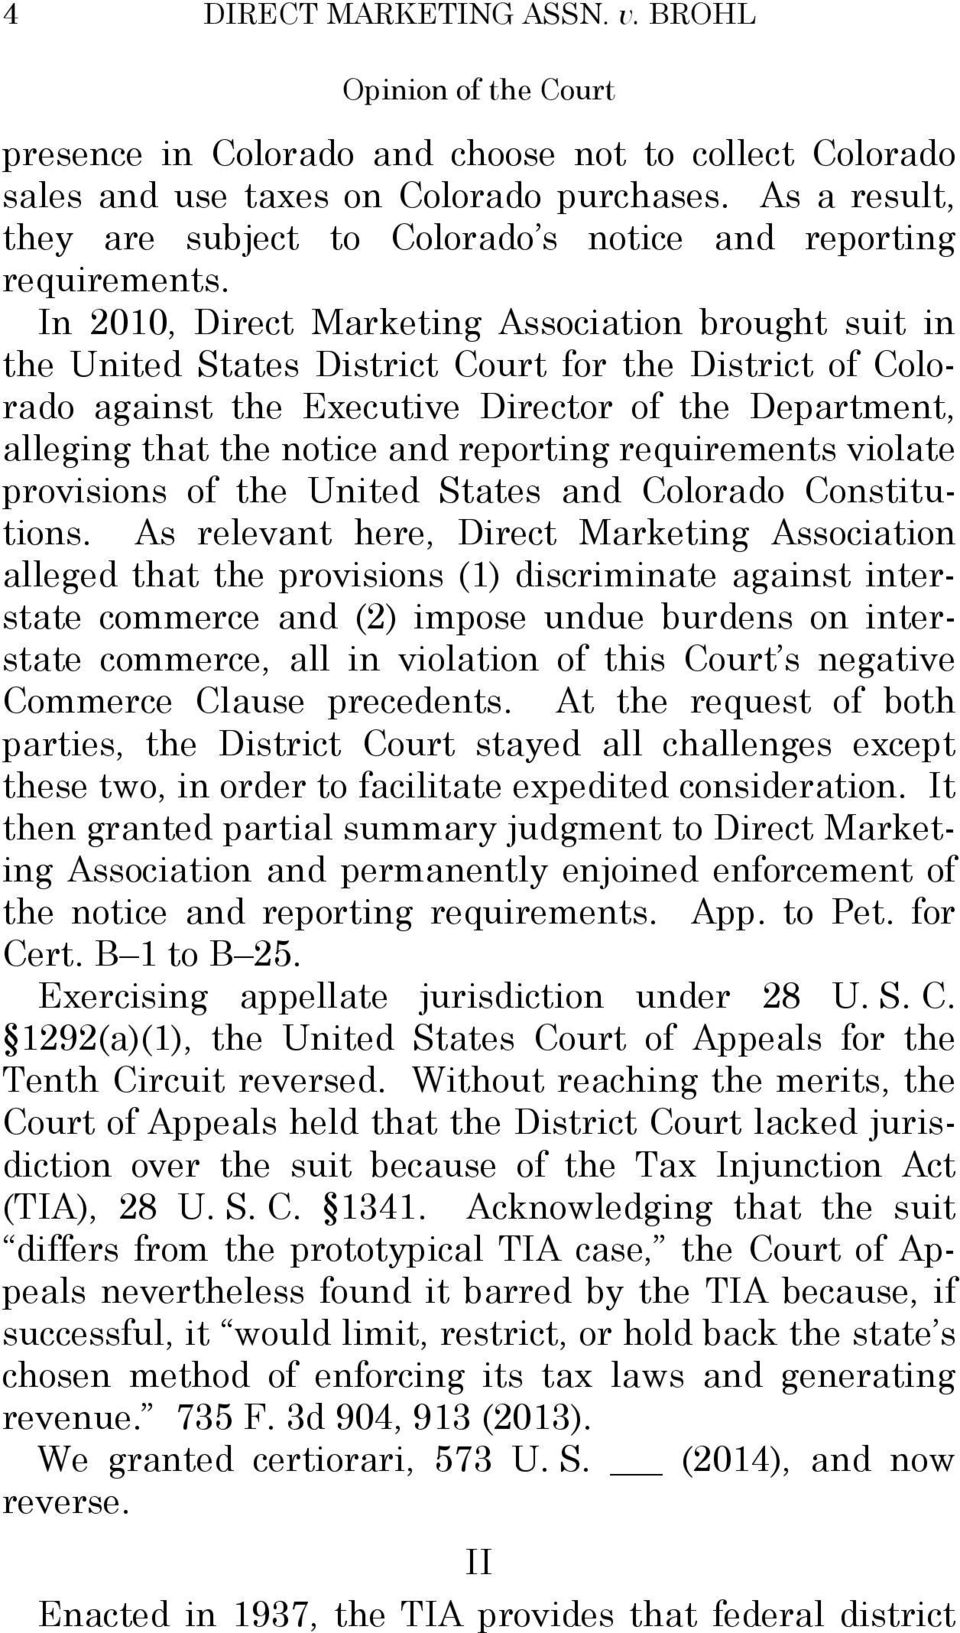 In 2010, Direct Marketing Association brought suit in the United States District Court for the District of Colorado against the Executive Director of the Department, alleging that the notice and